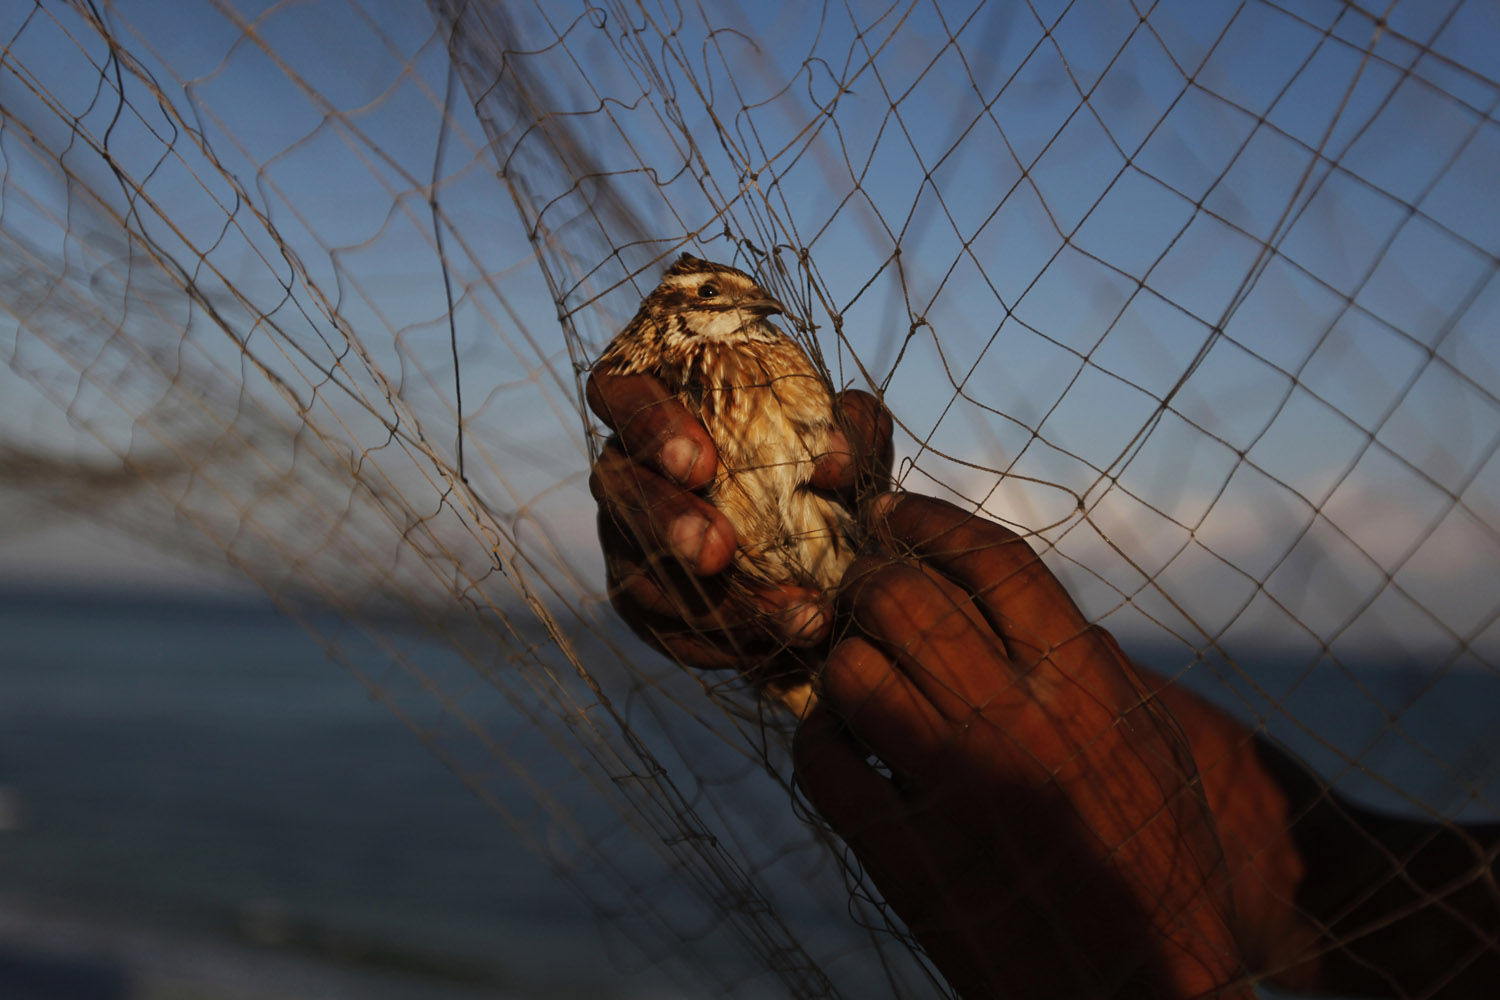 Sept. 9, 2013. A Palestinian child removes a migrant quail from a net after catching it on the beach of Gaza City.